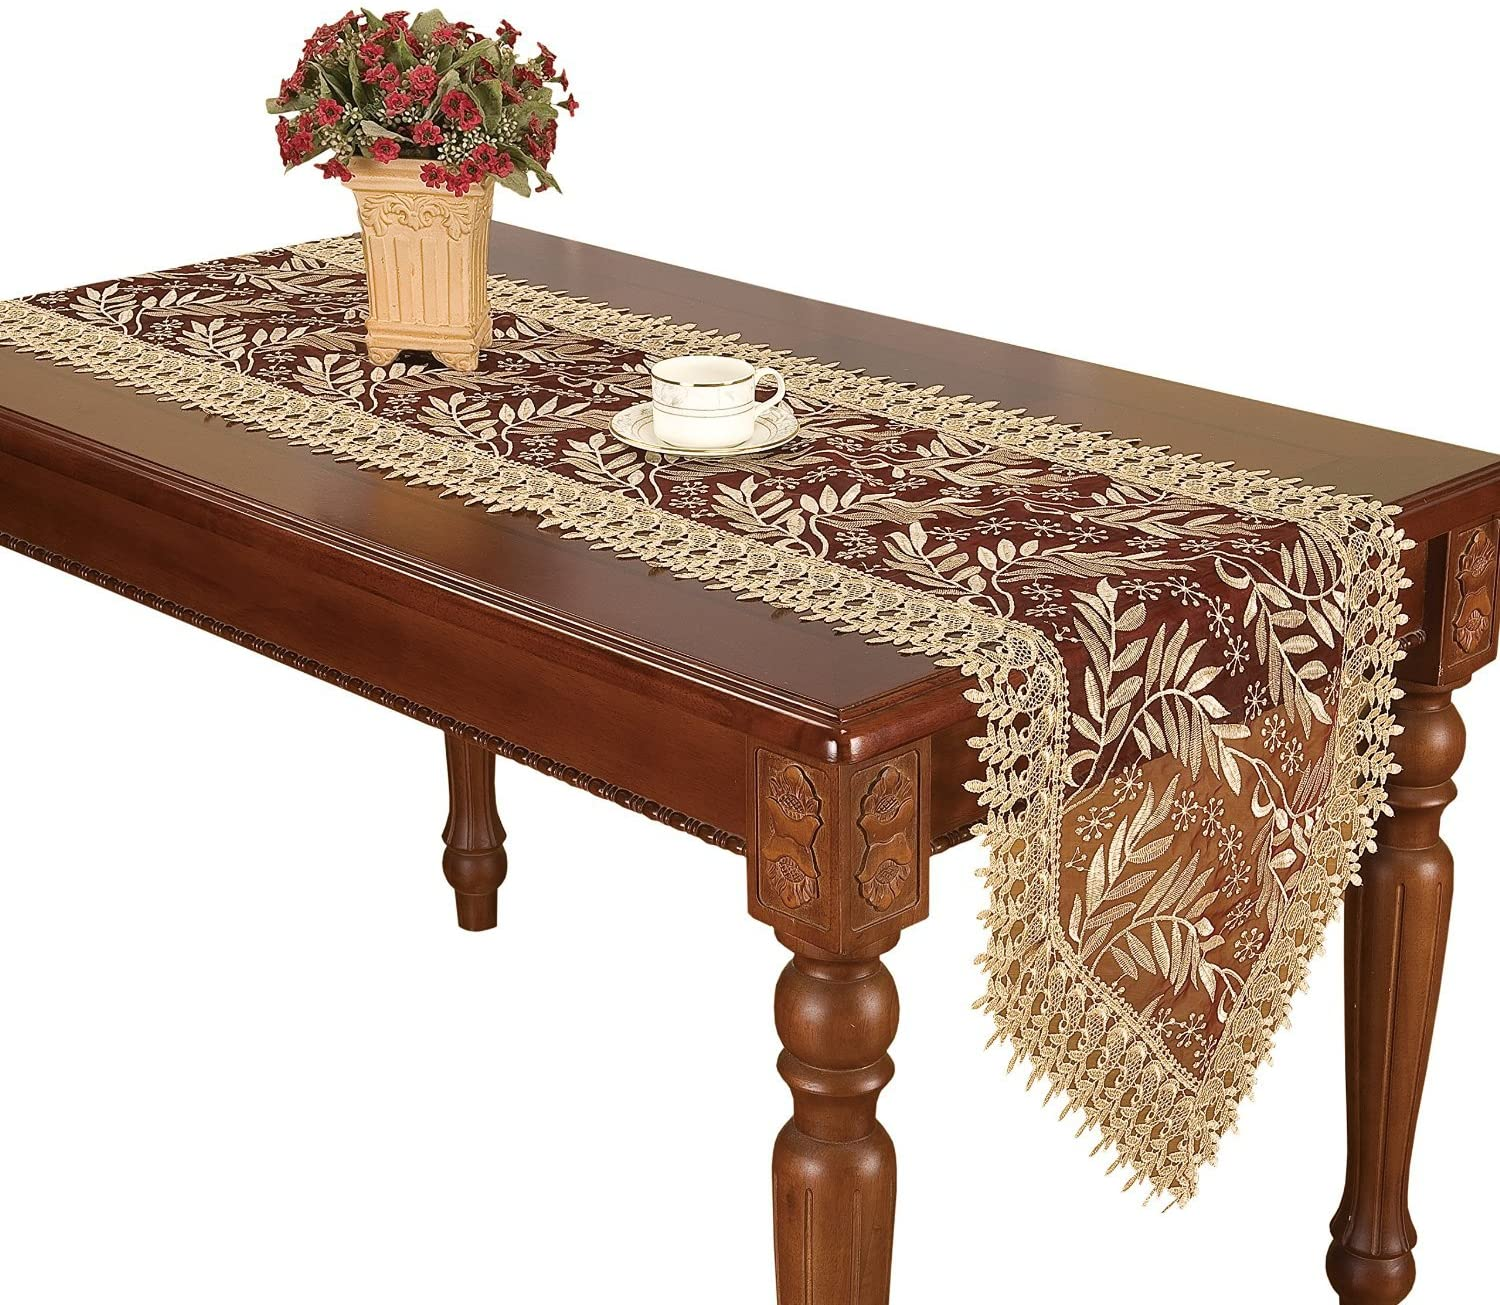 Simhomsen Large Ranking TOP15 Burgundy Lace Table Now free shipping Runner Long 120 Inch × 16